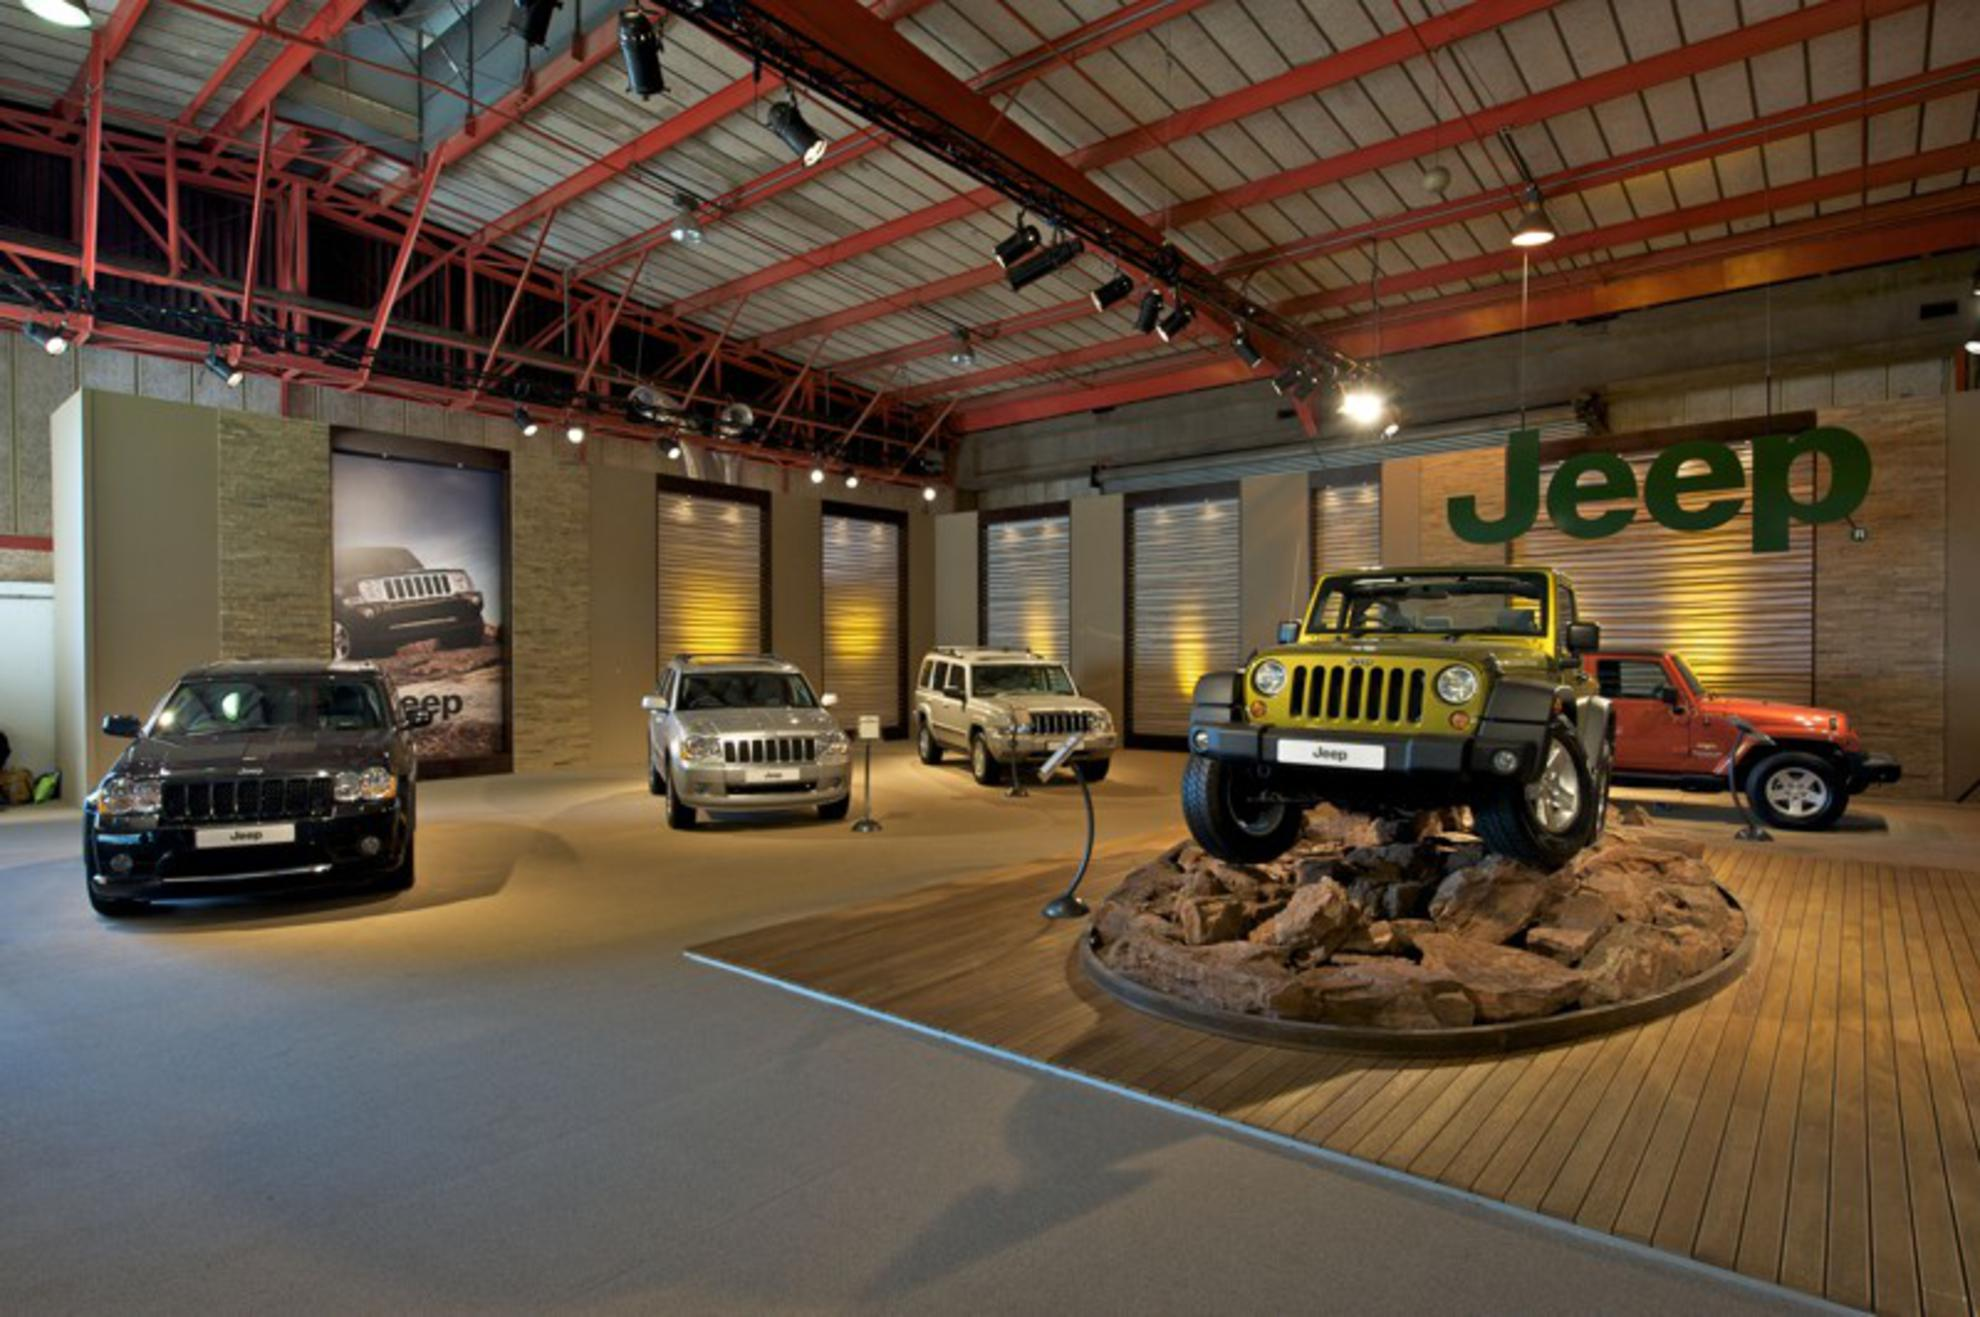 Exhibition Stand Builders Johannesburg : Http d car shows images jeep johannesburg motor